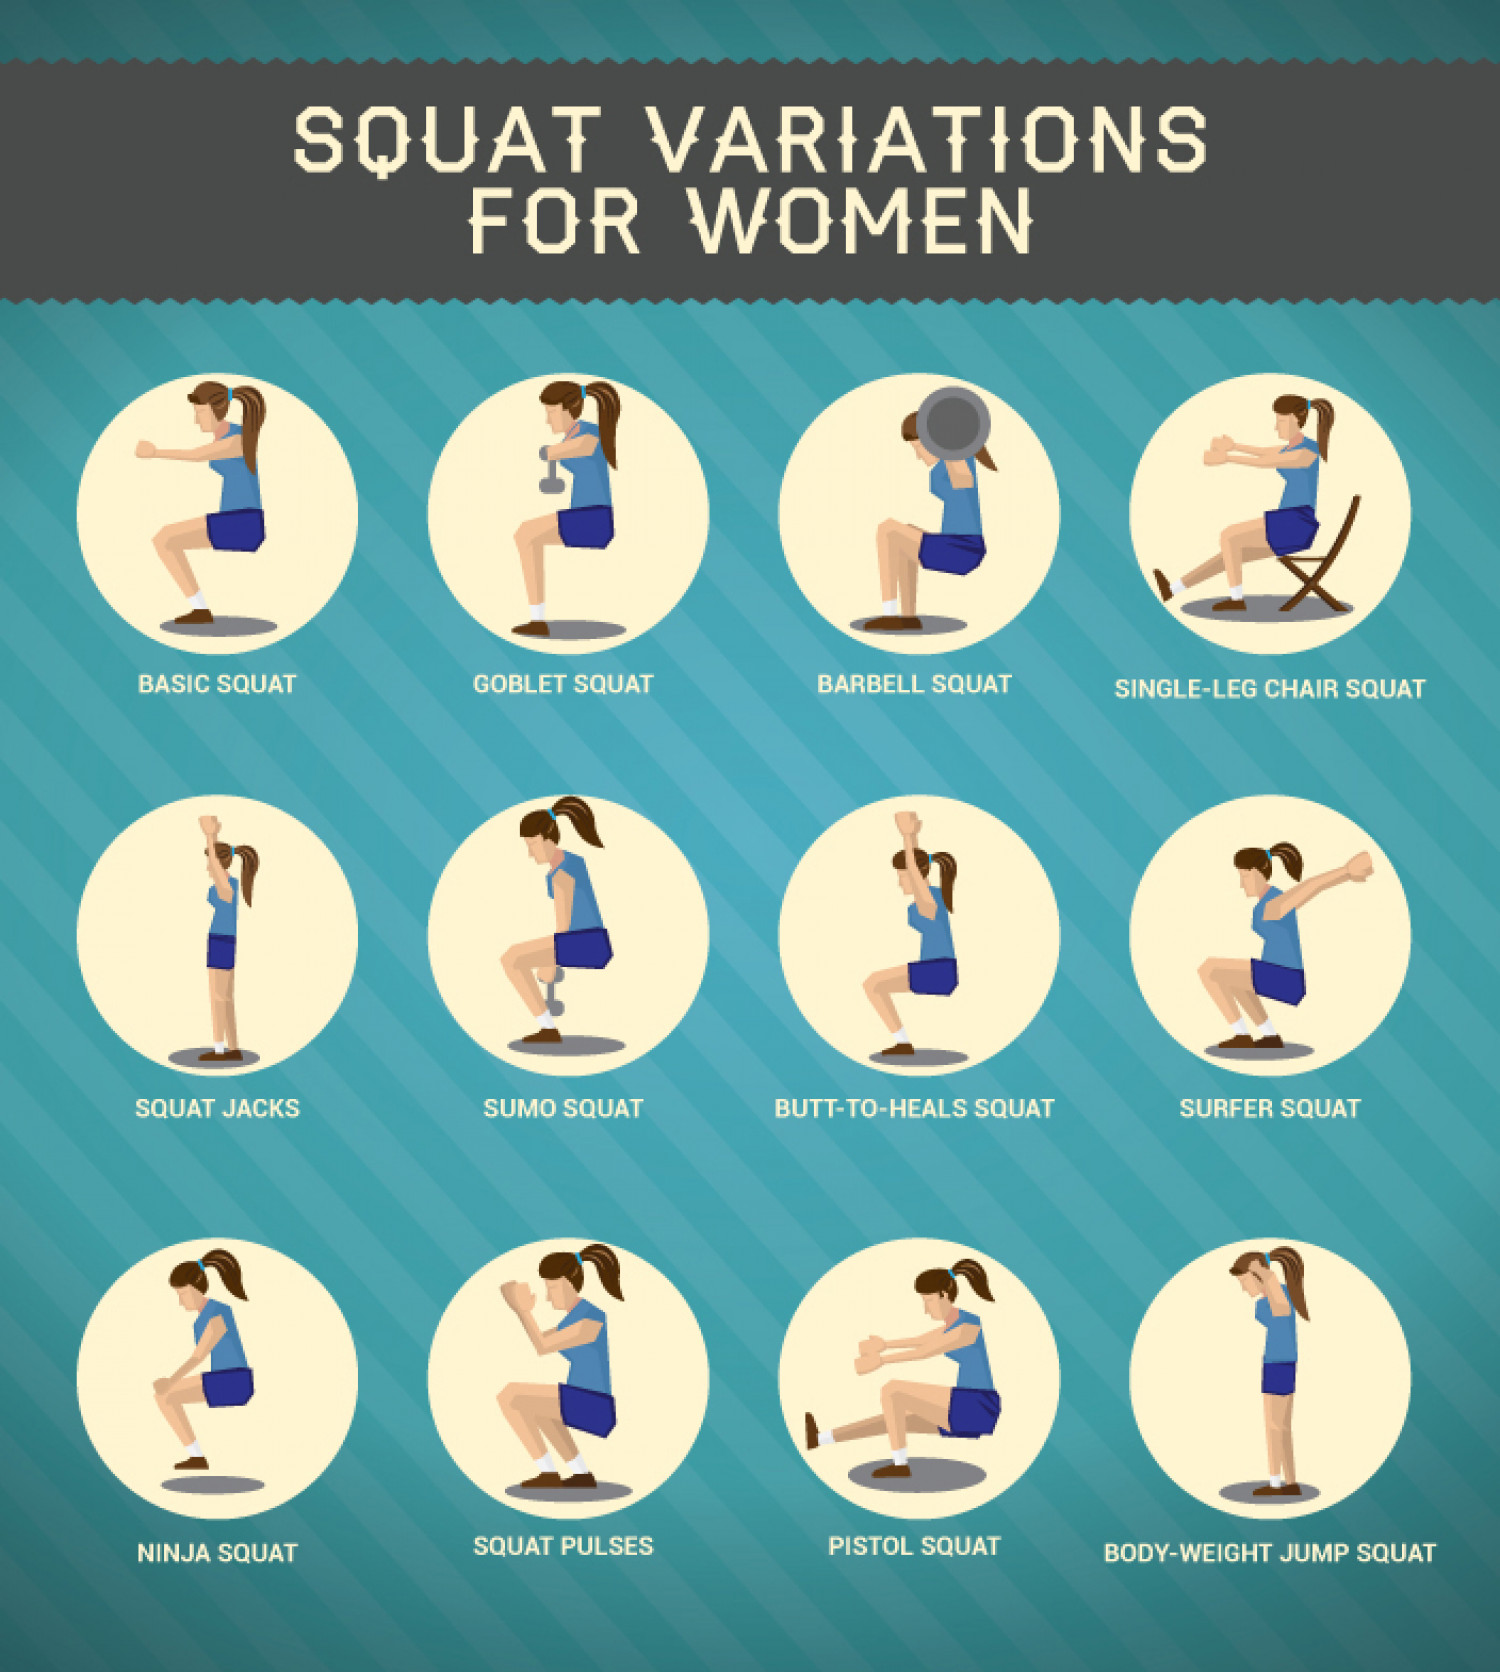 Squat Variations for Women Infographic